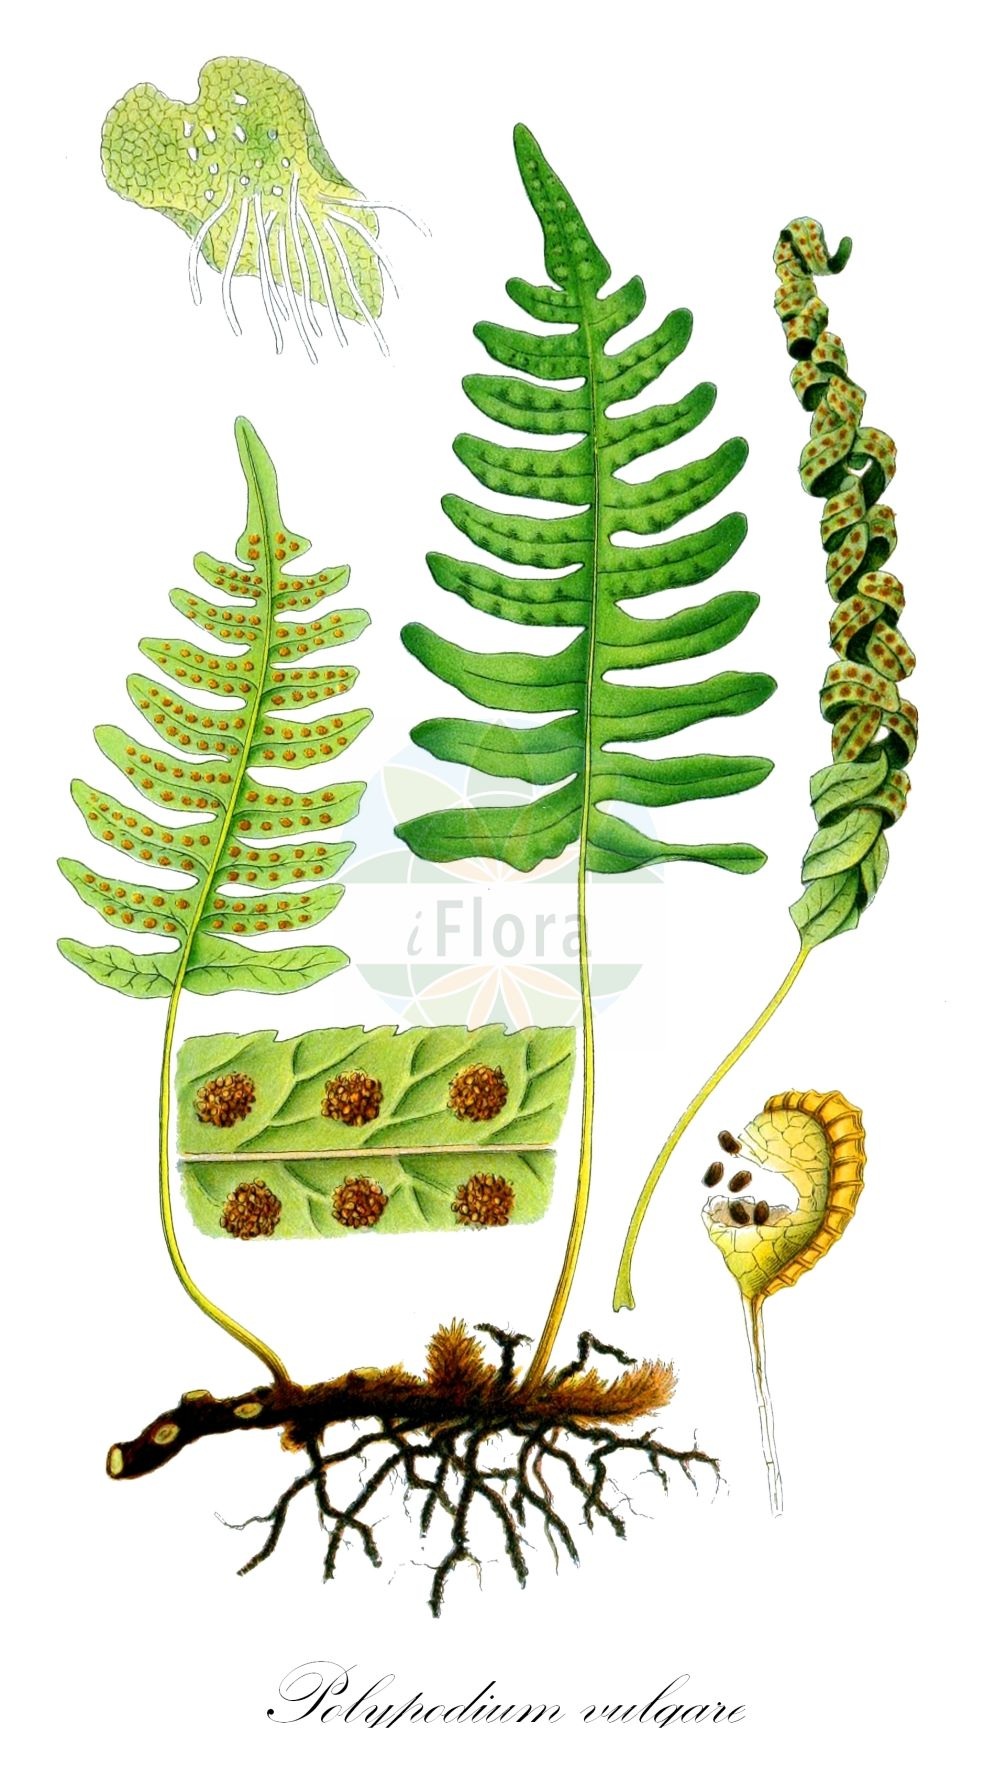 Historische Abbildung von Polypodium vulgare (Gewoehnlicher Tuepfelfarn - Polypody). Das Bild zeigt Blatt, Bluete, Frucht und Same. ---- Historical Drawing of Polypodium vulgare (Gewoehnlicher Tuepfelfarn - Polypody).The image is showing leaf, flower, fruit and seed.(Polypodium vulgare,Gewoehnlicher Tuepfelfarn,Polypody,subsp. issaevii,Common ,Polypodium,Tuepfelfarn,Polypodies,Polypodiaceae,Tuepfelfarngewaechse,Polypody family,Blatt,Bluete,Frucht,Same,leaf,flower,fruit,seed,Lindman (1901-1905))